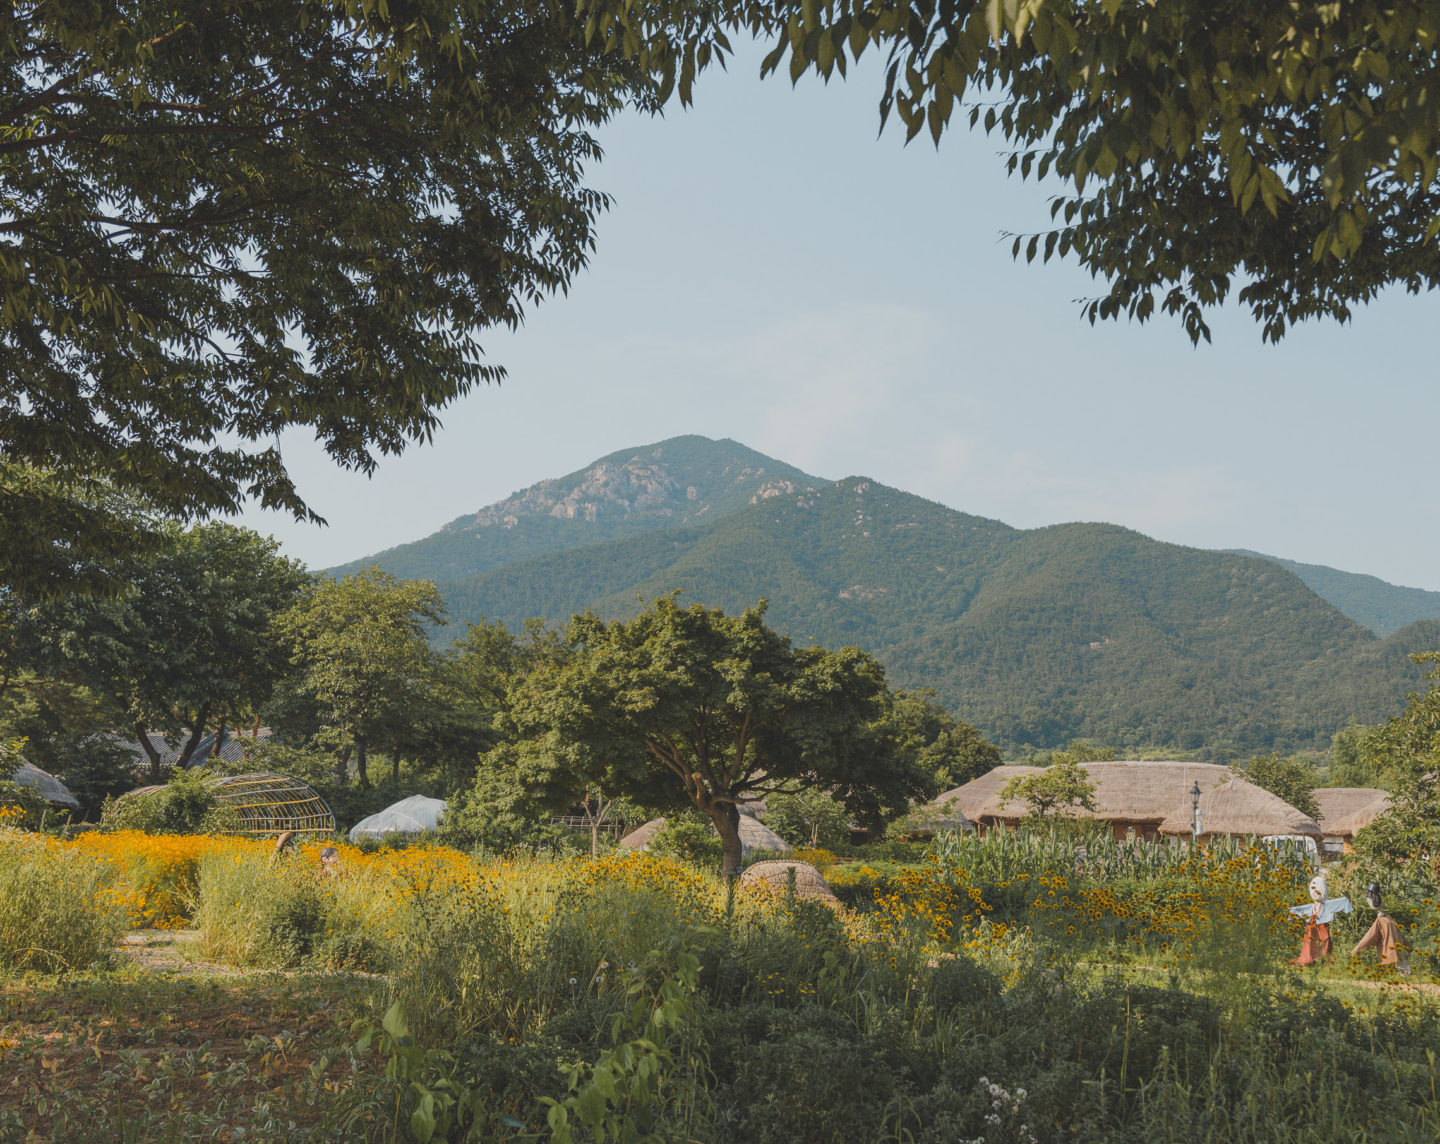 naganeupseong with mountain background